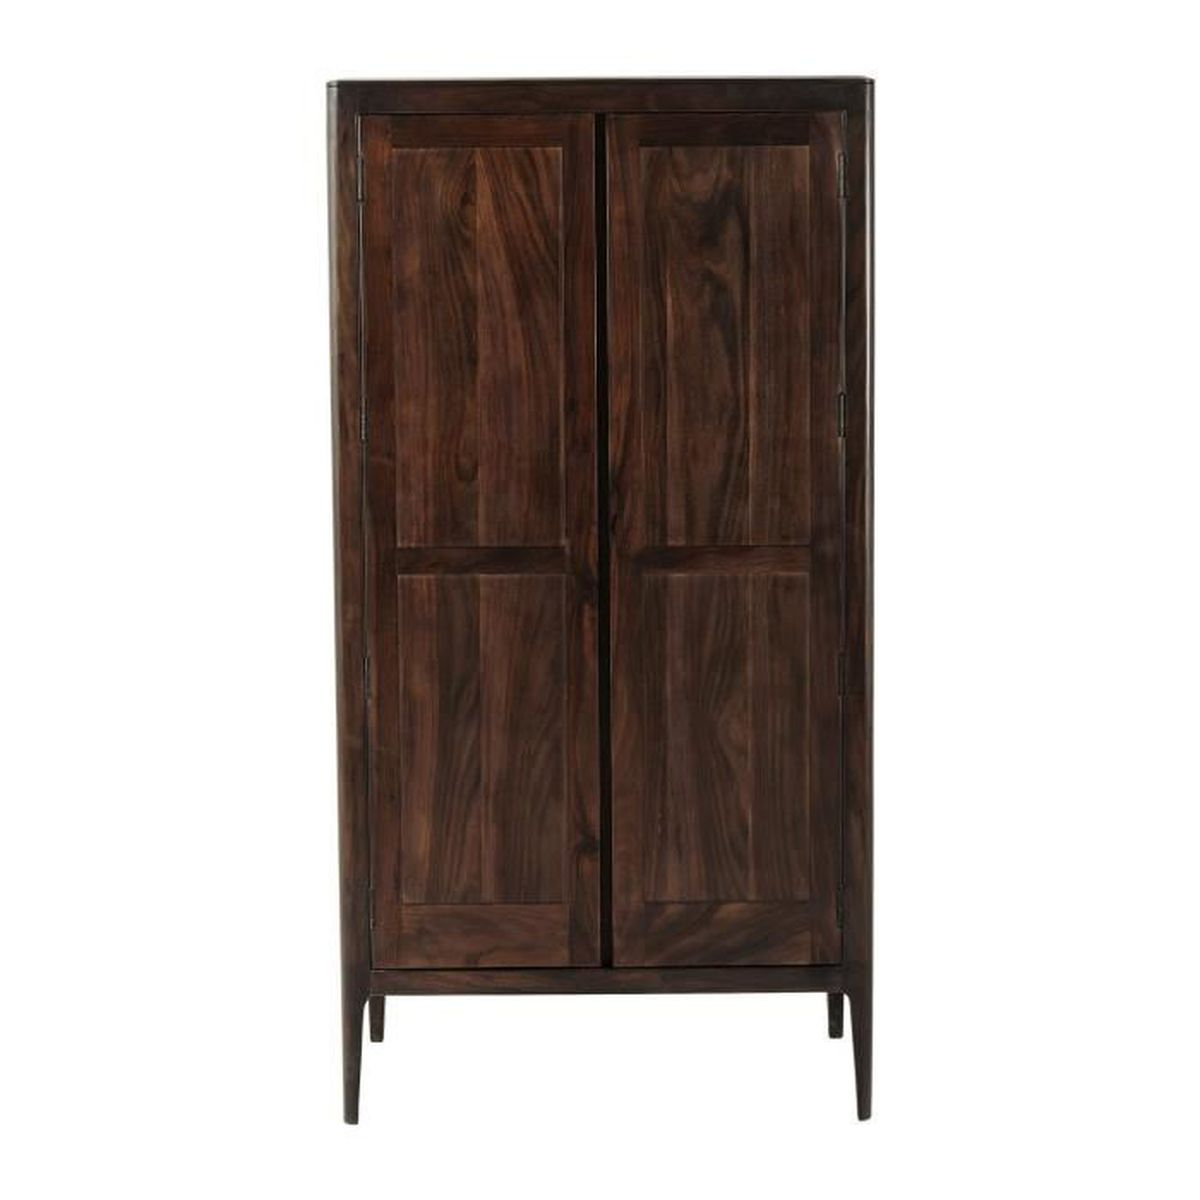 armoire brooklyn walnut kare design achat vente. Black Bedroom Furniture Sets. Home Design Ideas